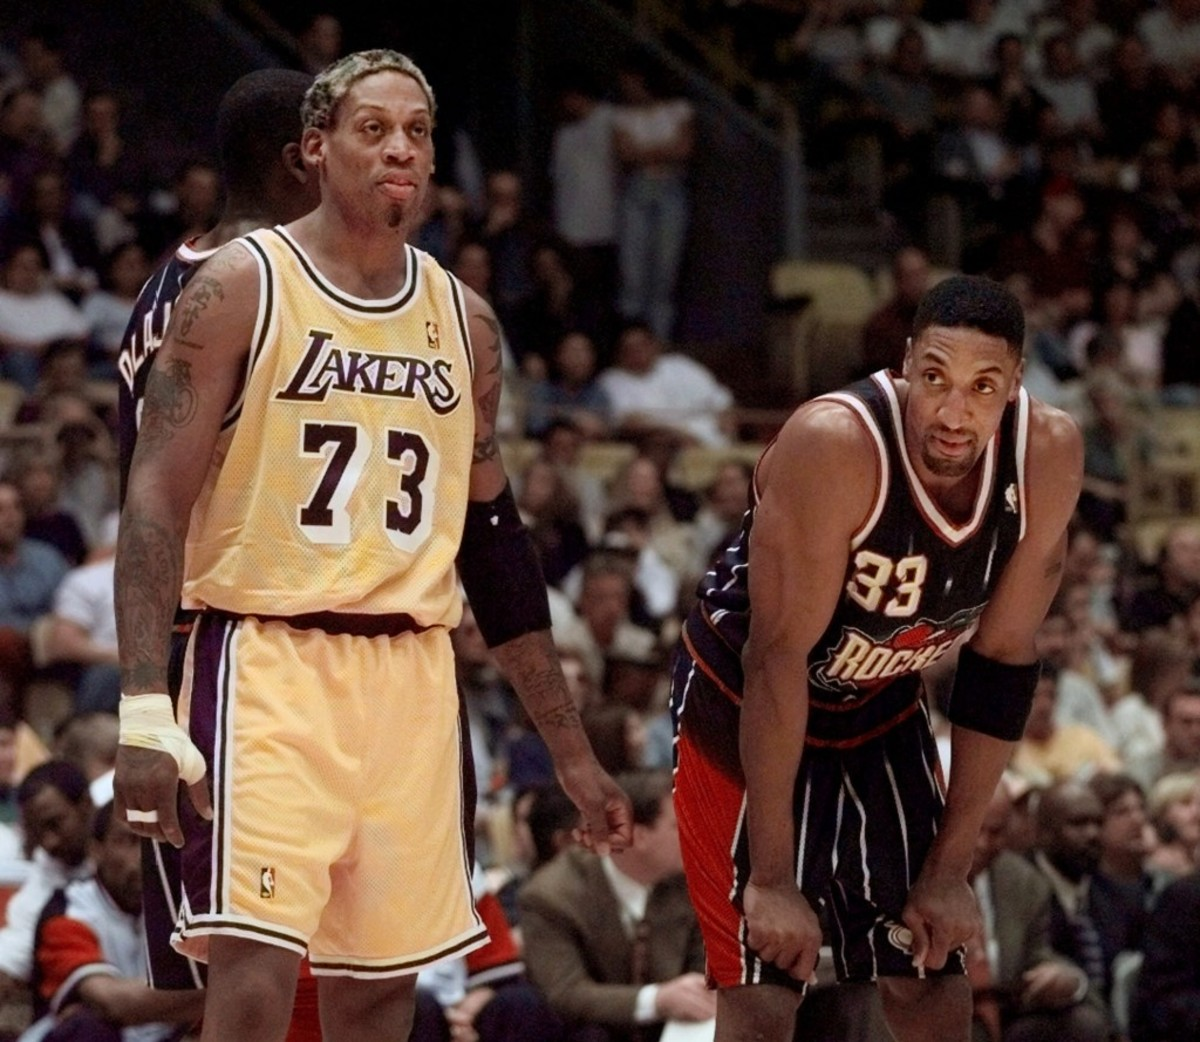 Los Angeles Lakers' Dennis Rodman, left, and Houston Rockets' Scottie Pippen stand at the foul line for their first meeting since both players were teammates on the Chicago Bulls Sunday, Feb. 28, 1999, in Inglewood, Calif.(AP Photo/Kevork Djansezian)